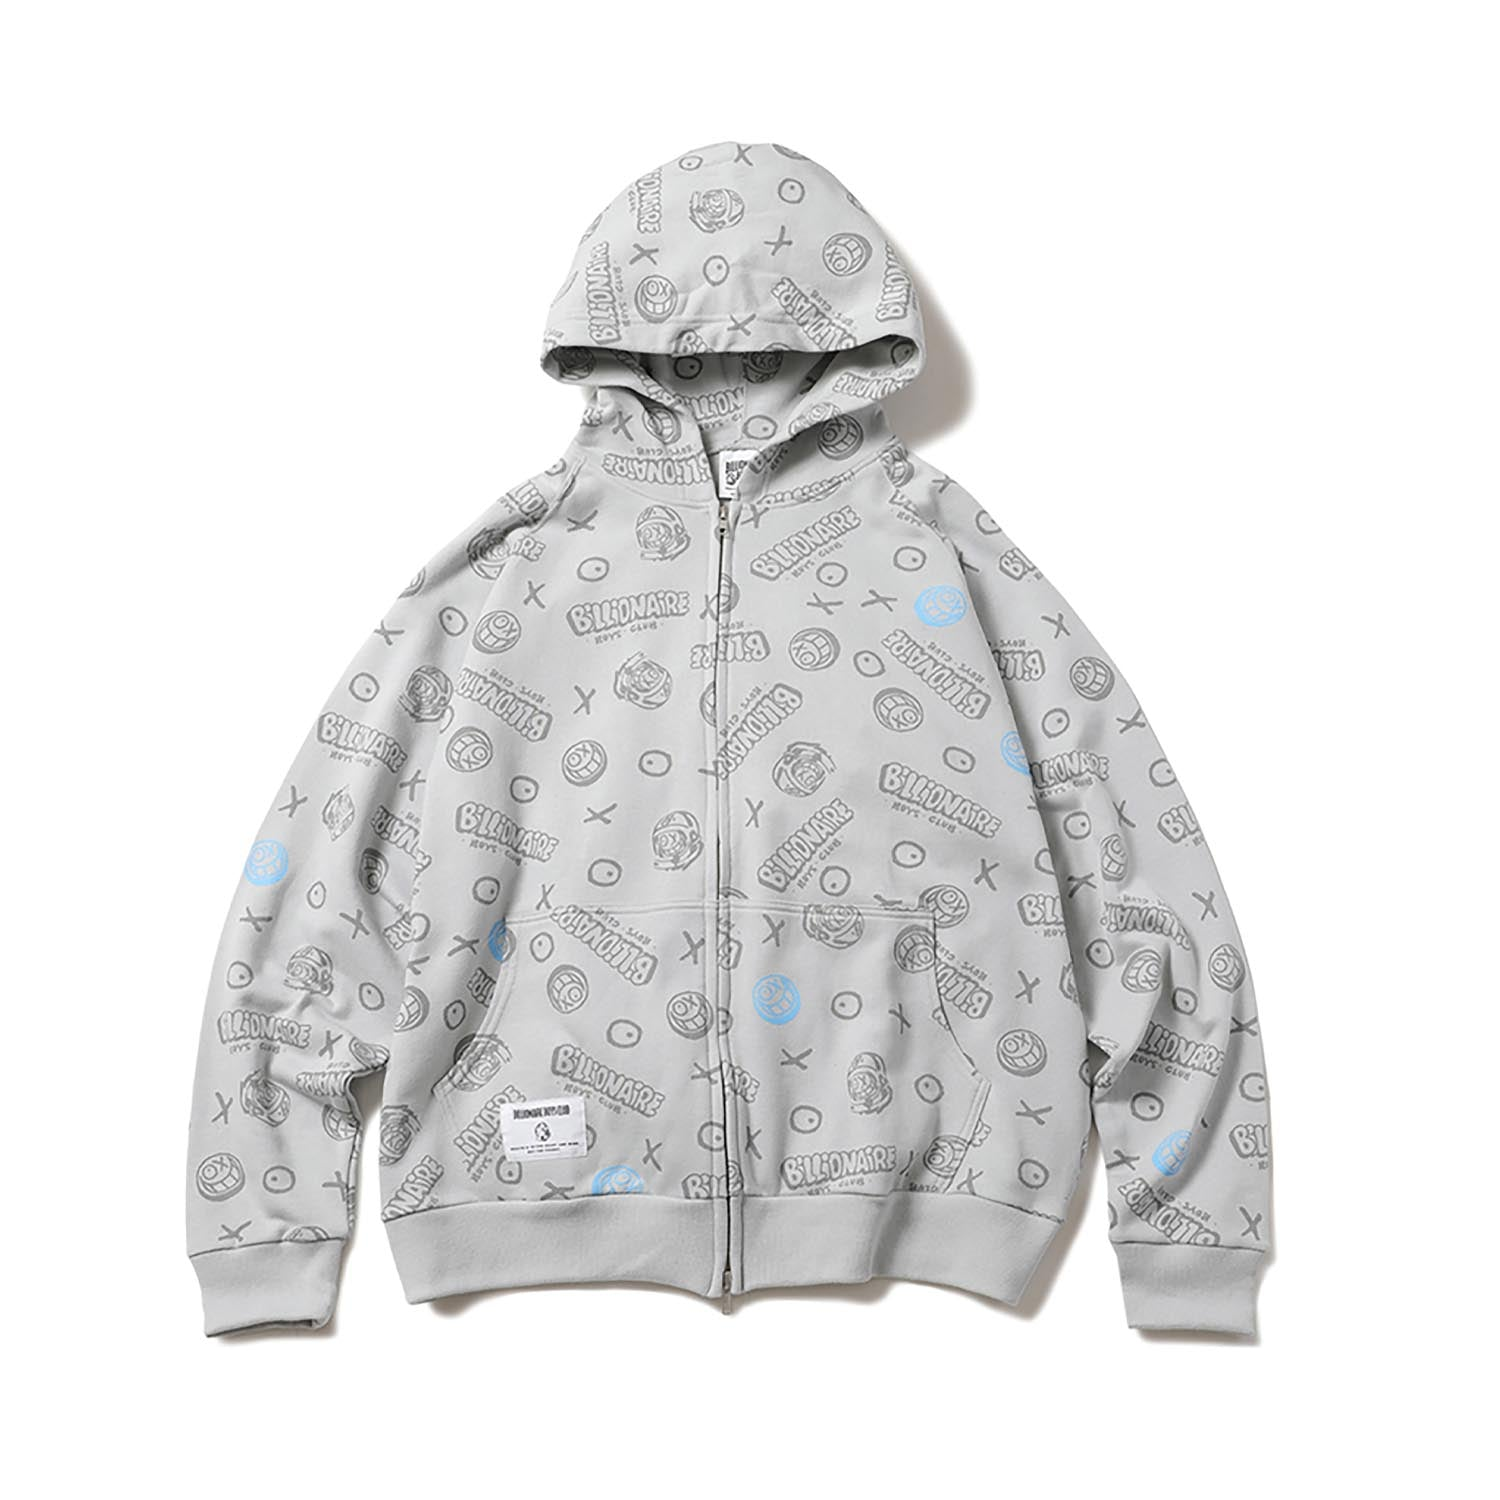 BILLIONAIRE BOYS CLUB x ANDRE SARAIVA ALLOVER PRINT ZIP UP HOODIE